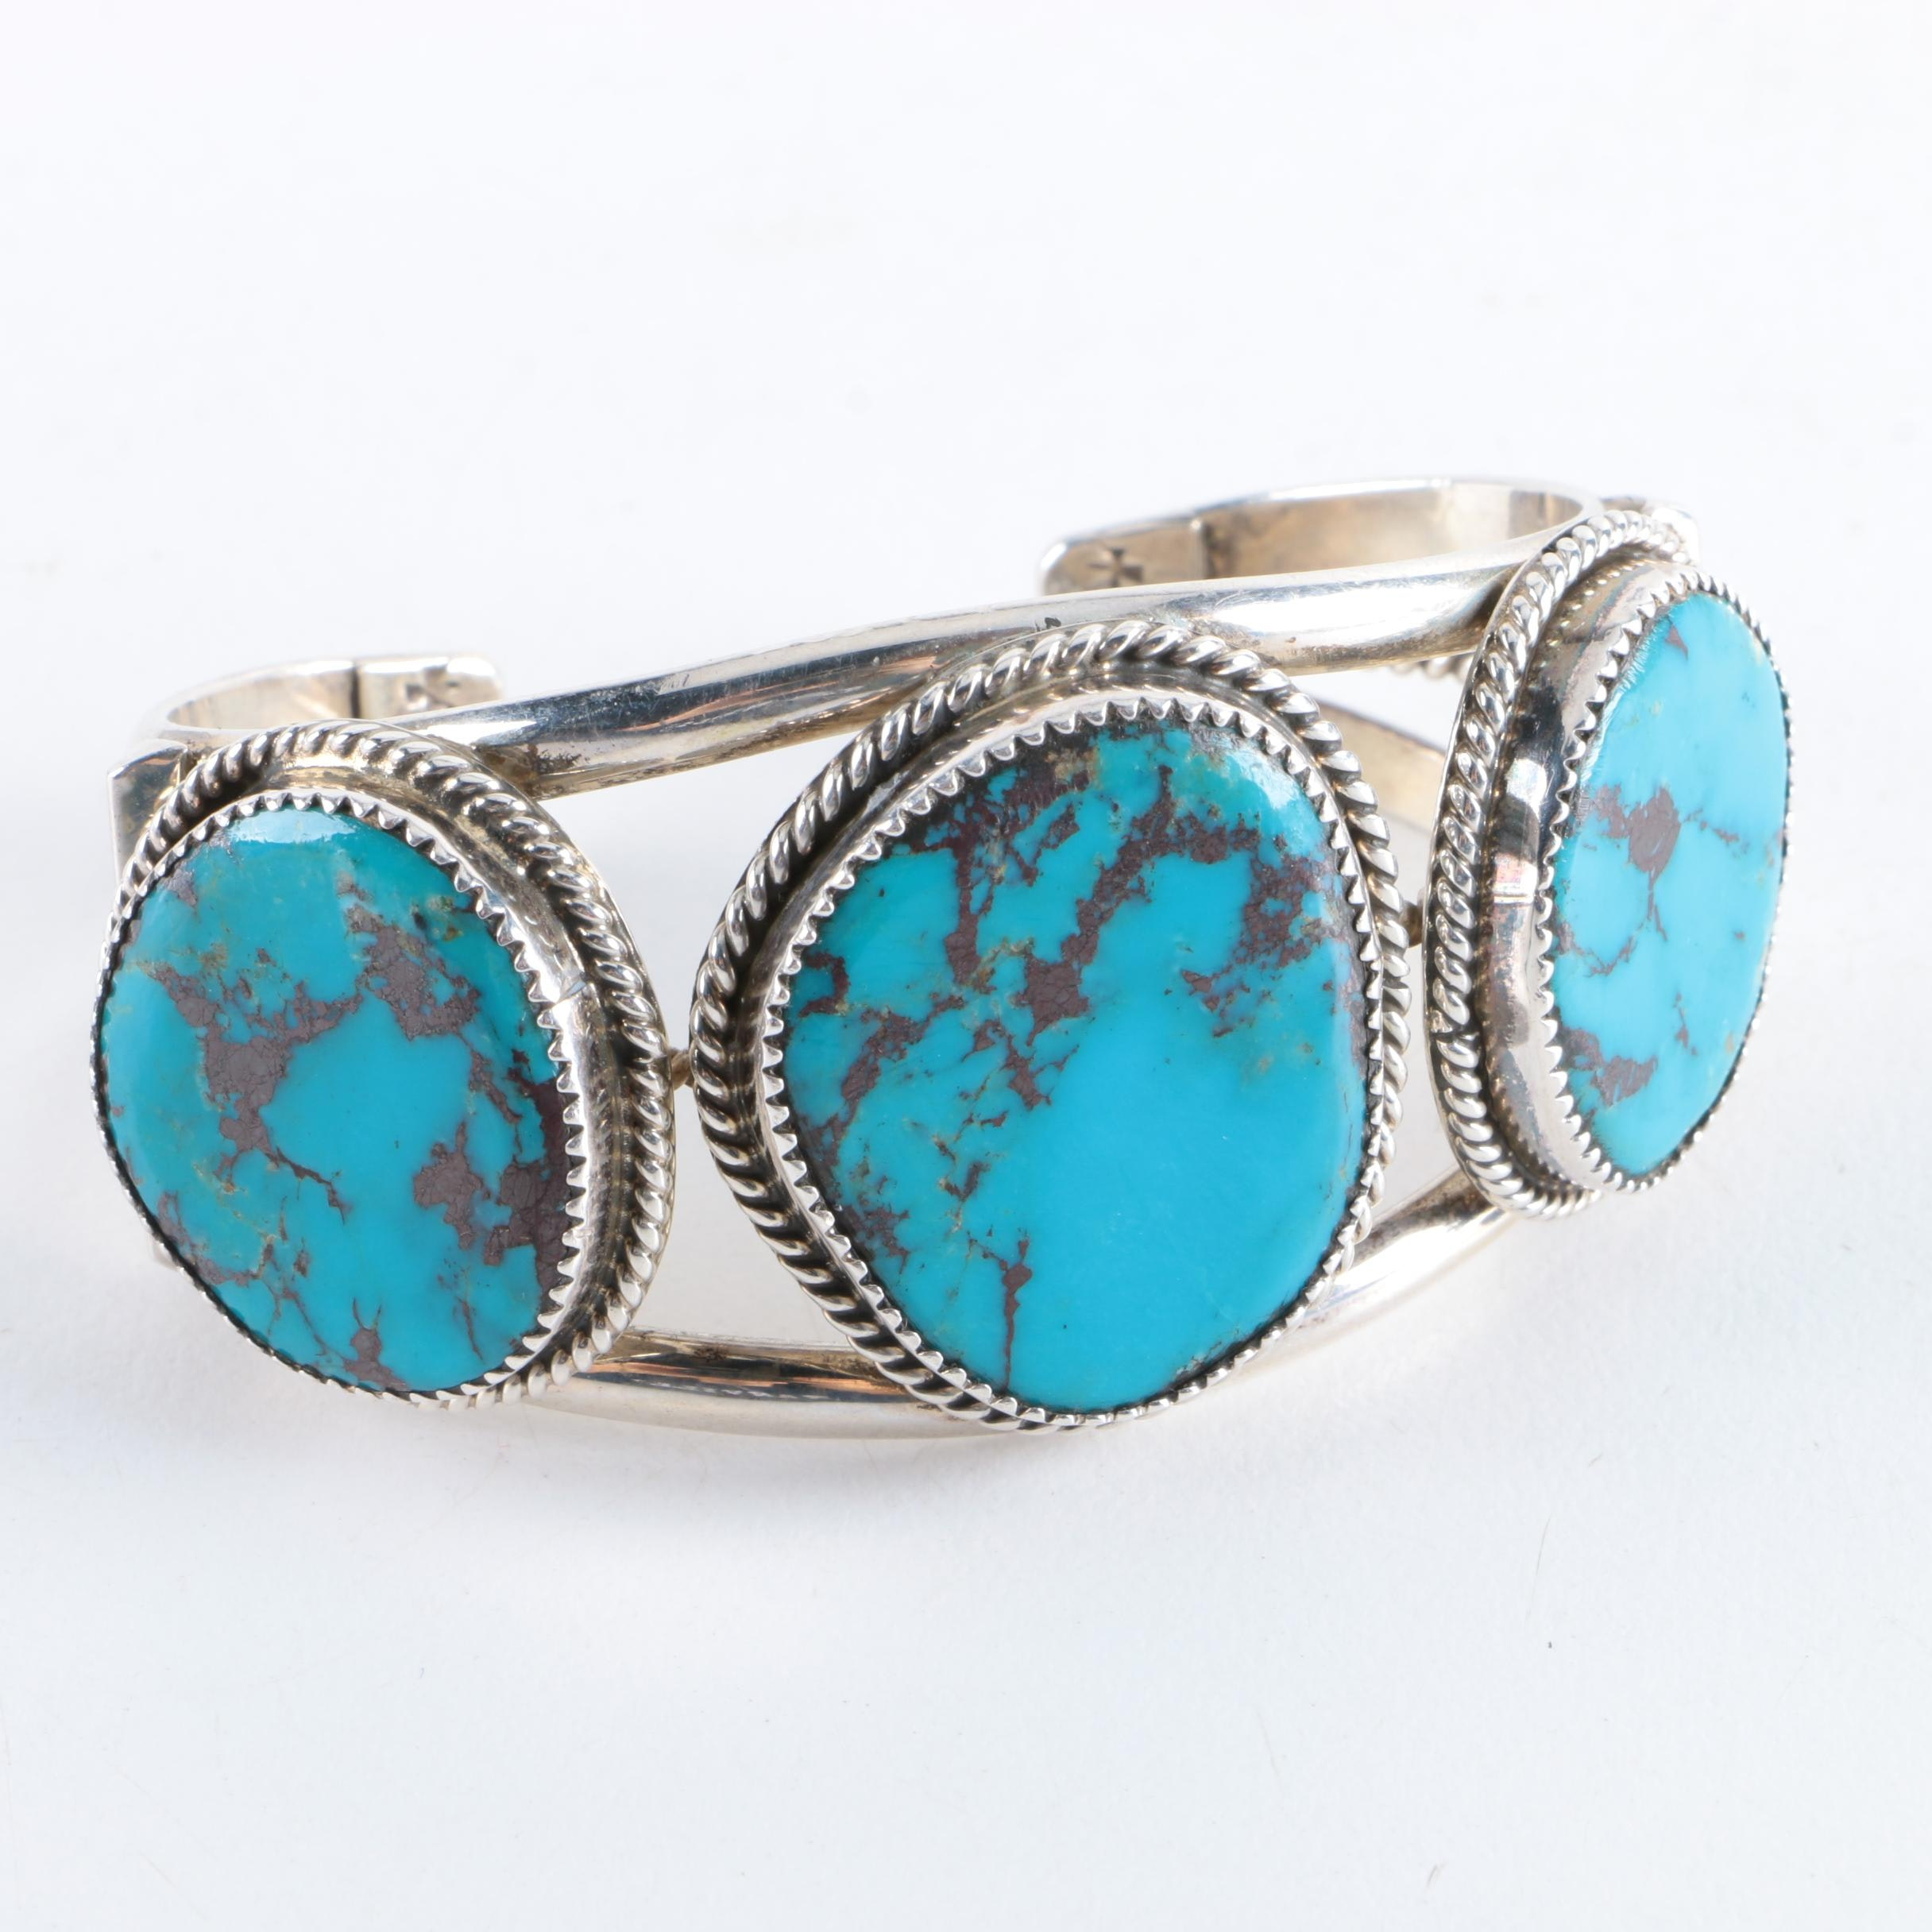 Southwest Signed Sterling Silver and Turquoise Cuff Bracelet